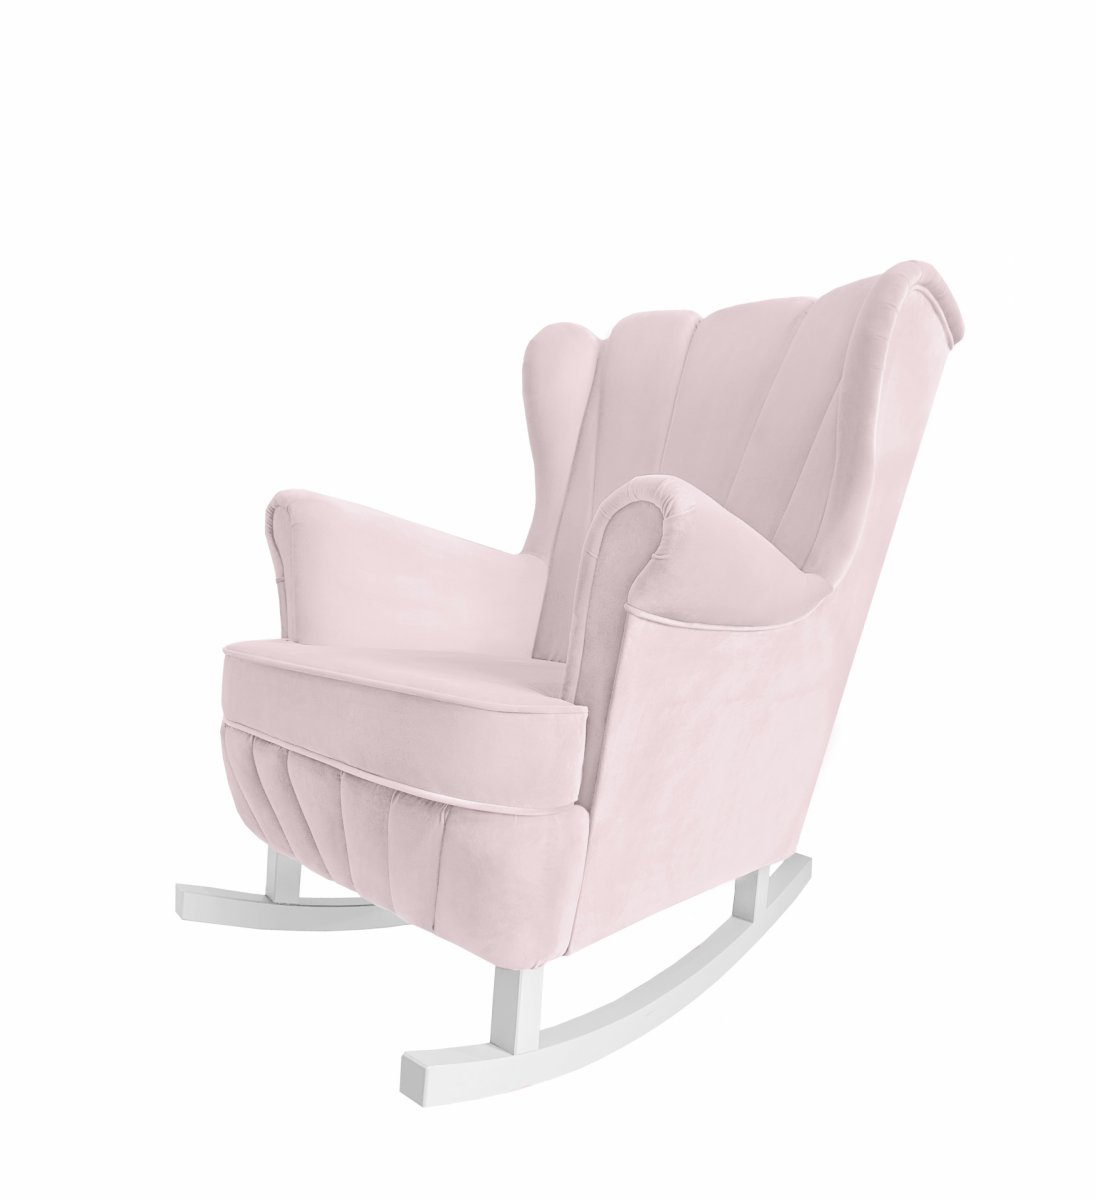 Baby pink rocking armchair Shell - Armchairs - Furniture ...